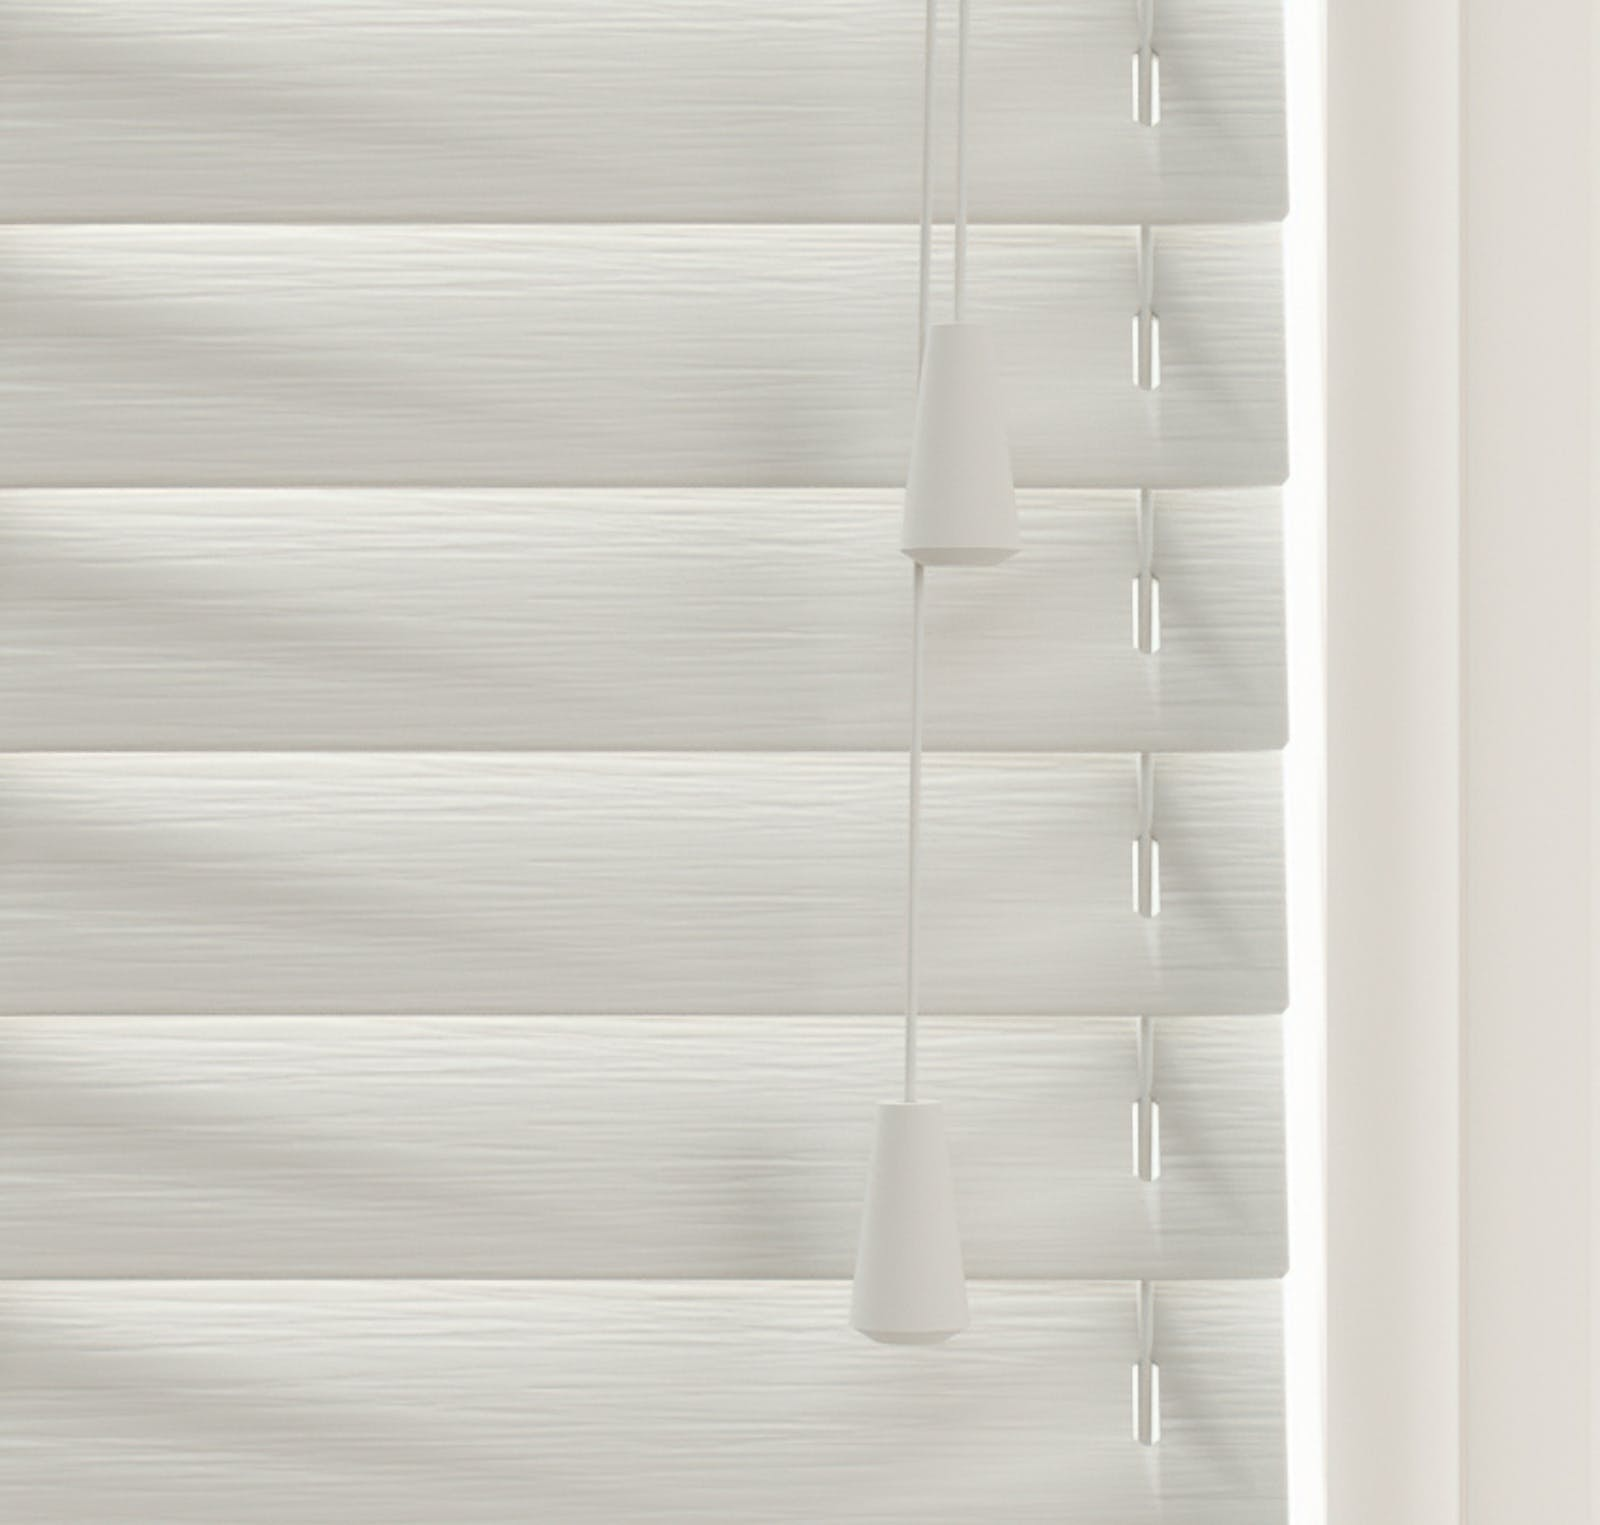 Close up view of Lick Grey 03 Venetian fine grain blinds